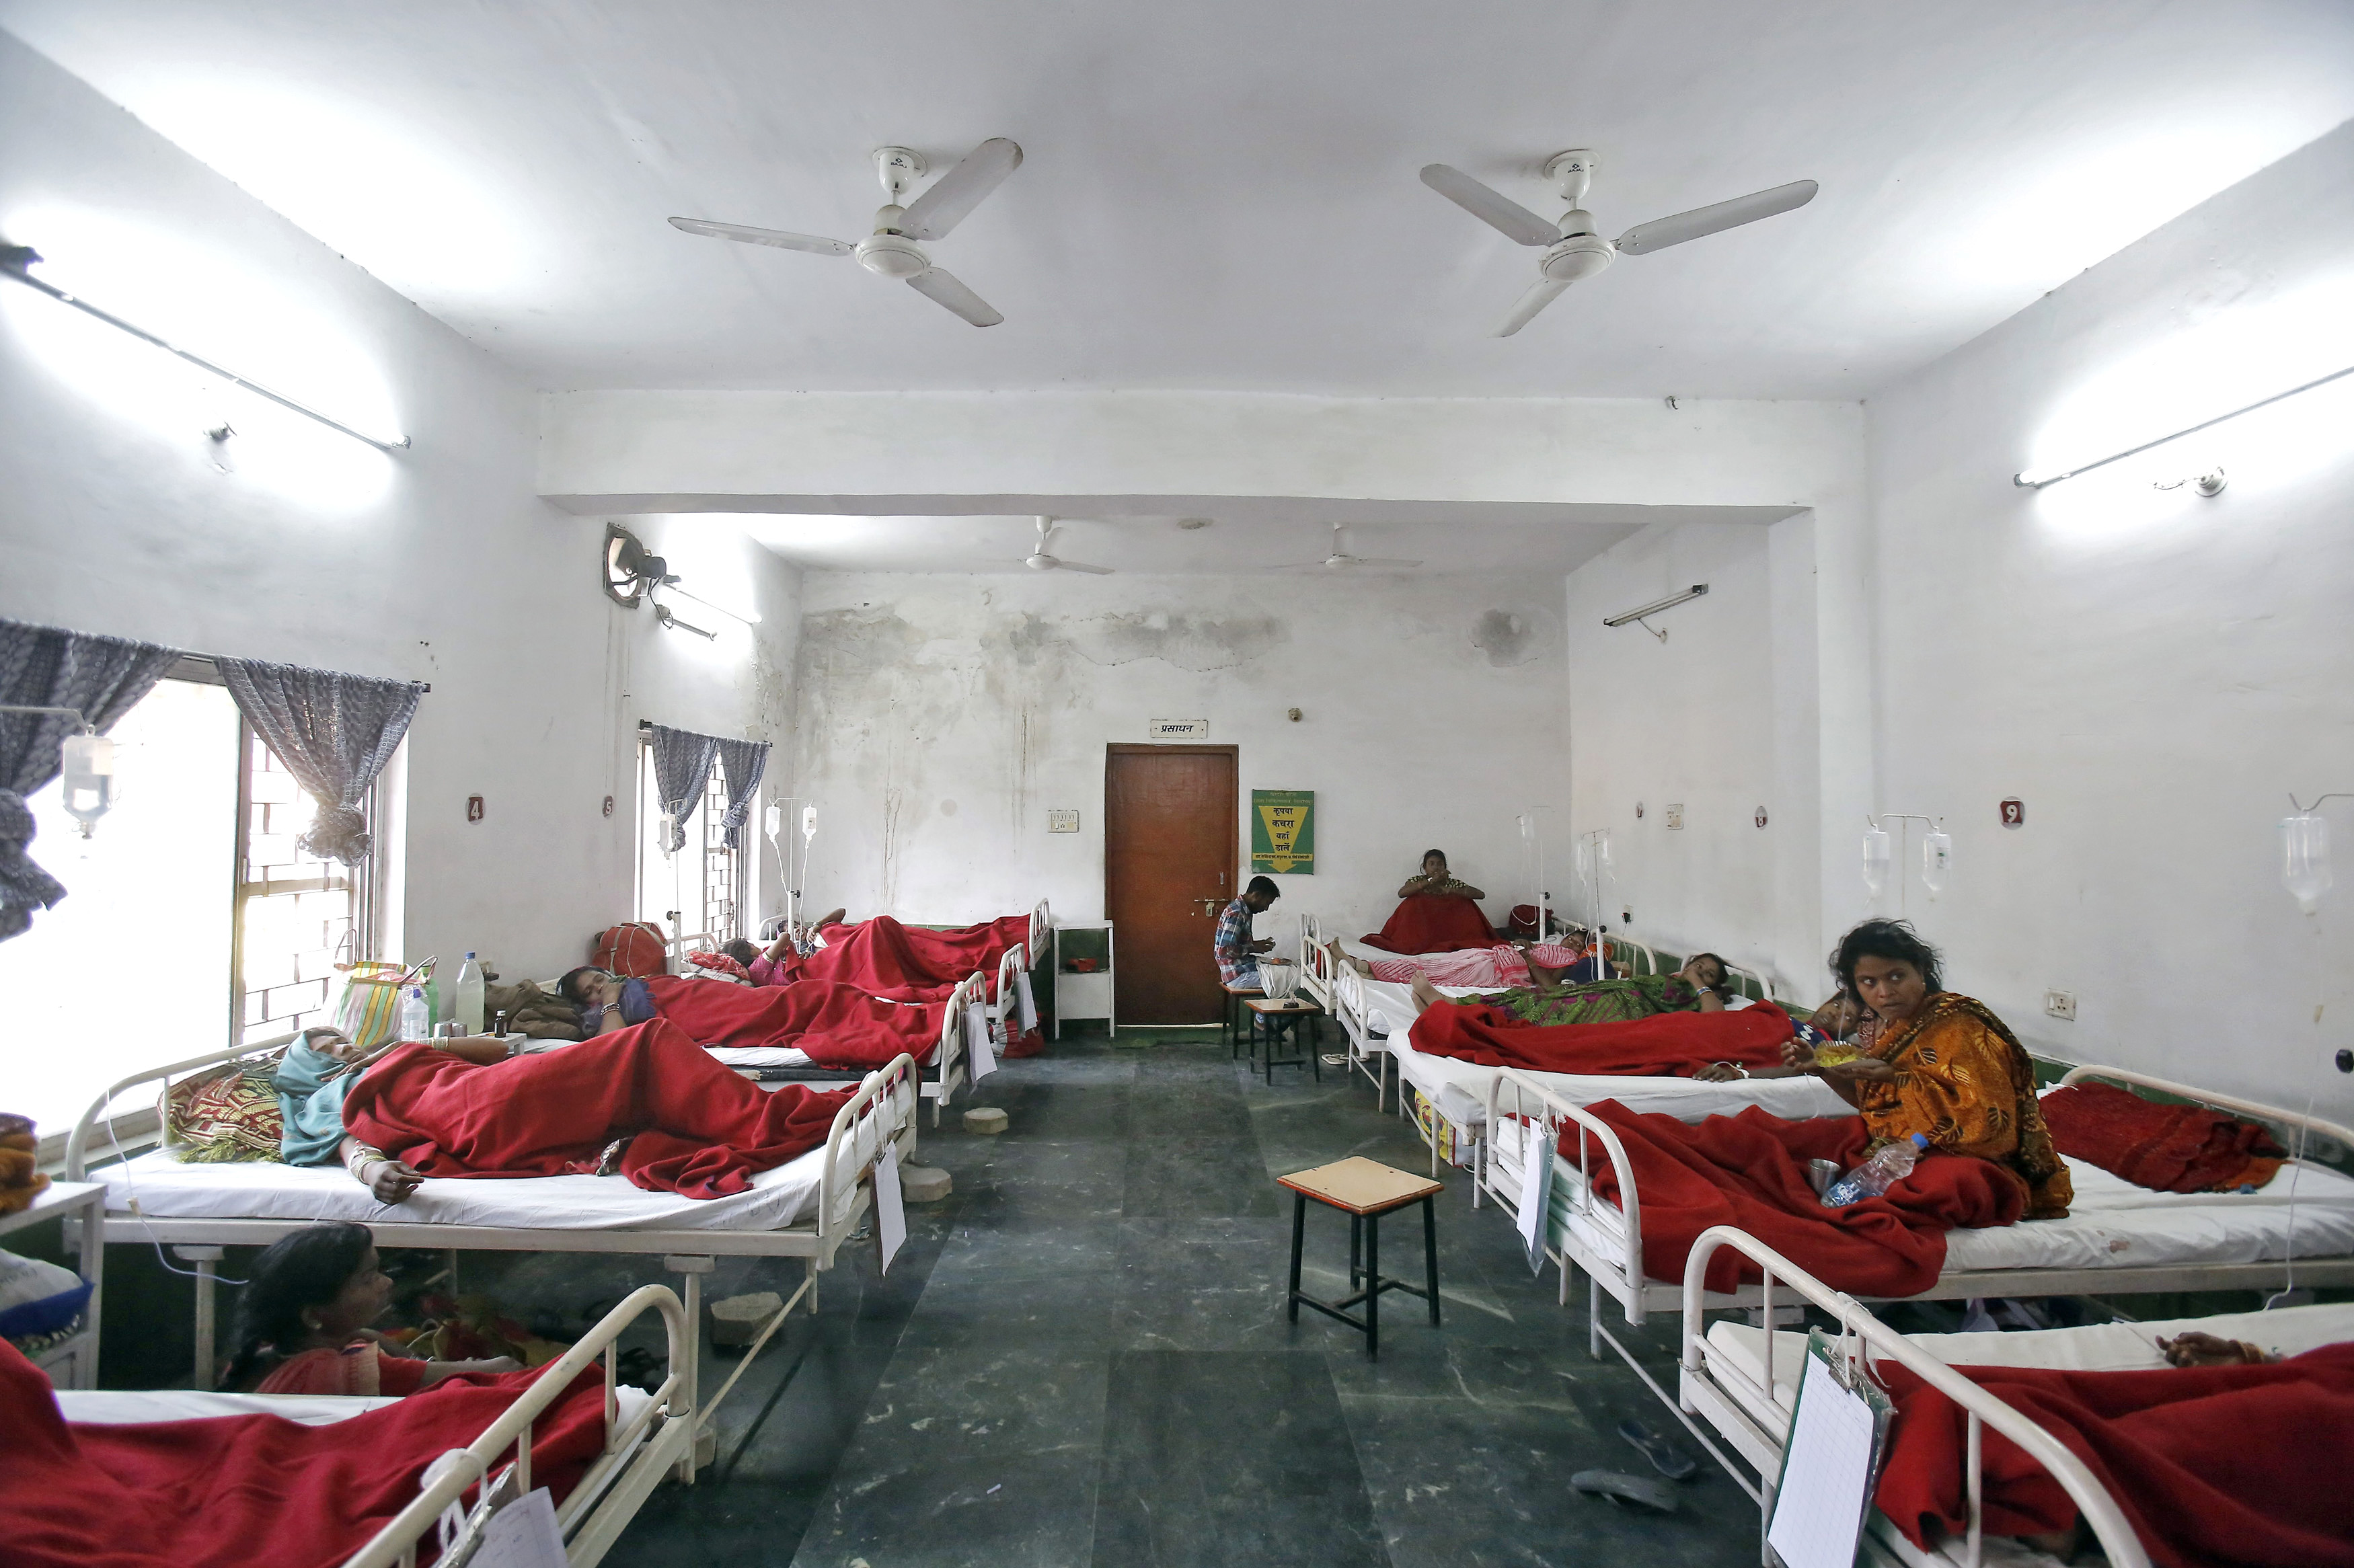 """Women, who underwent a sterilization surgery at a government mass sterilisation """"camp"""", lie in hospital beds for treatment at Chhattisgarh Institute of Medical Sciences (CIMS) hospital in Bilaspur, in the eastern Indian state of Chhattisgarh, November 13, 2014. The doctor whose sterilisation of 83 women in less than three hours ended in at least a dozen deaths said on Thursday the express operations were his moral responsibility and blamed adulterated medicines for the tragedy. Dr R. K Gupta, who says he has conducted more than 50,000 such operations, denied that his equipment was rusty or dirty and said it was the government's duty to control the number of people that turned up at his family-planning """"camp"""". REUTERS/Anindito Mukherjee (INDIA - Tags: HEALTH CRIME LAW SOCIETY) - RTR4DYN3"""